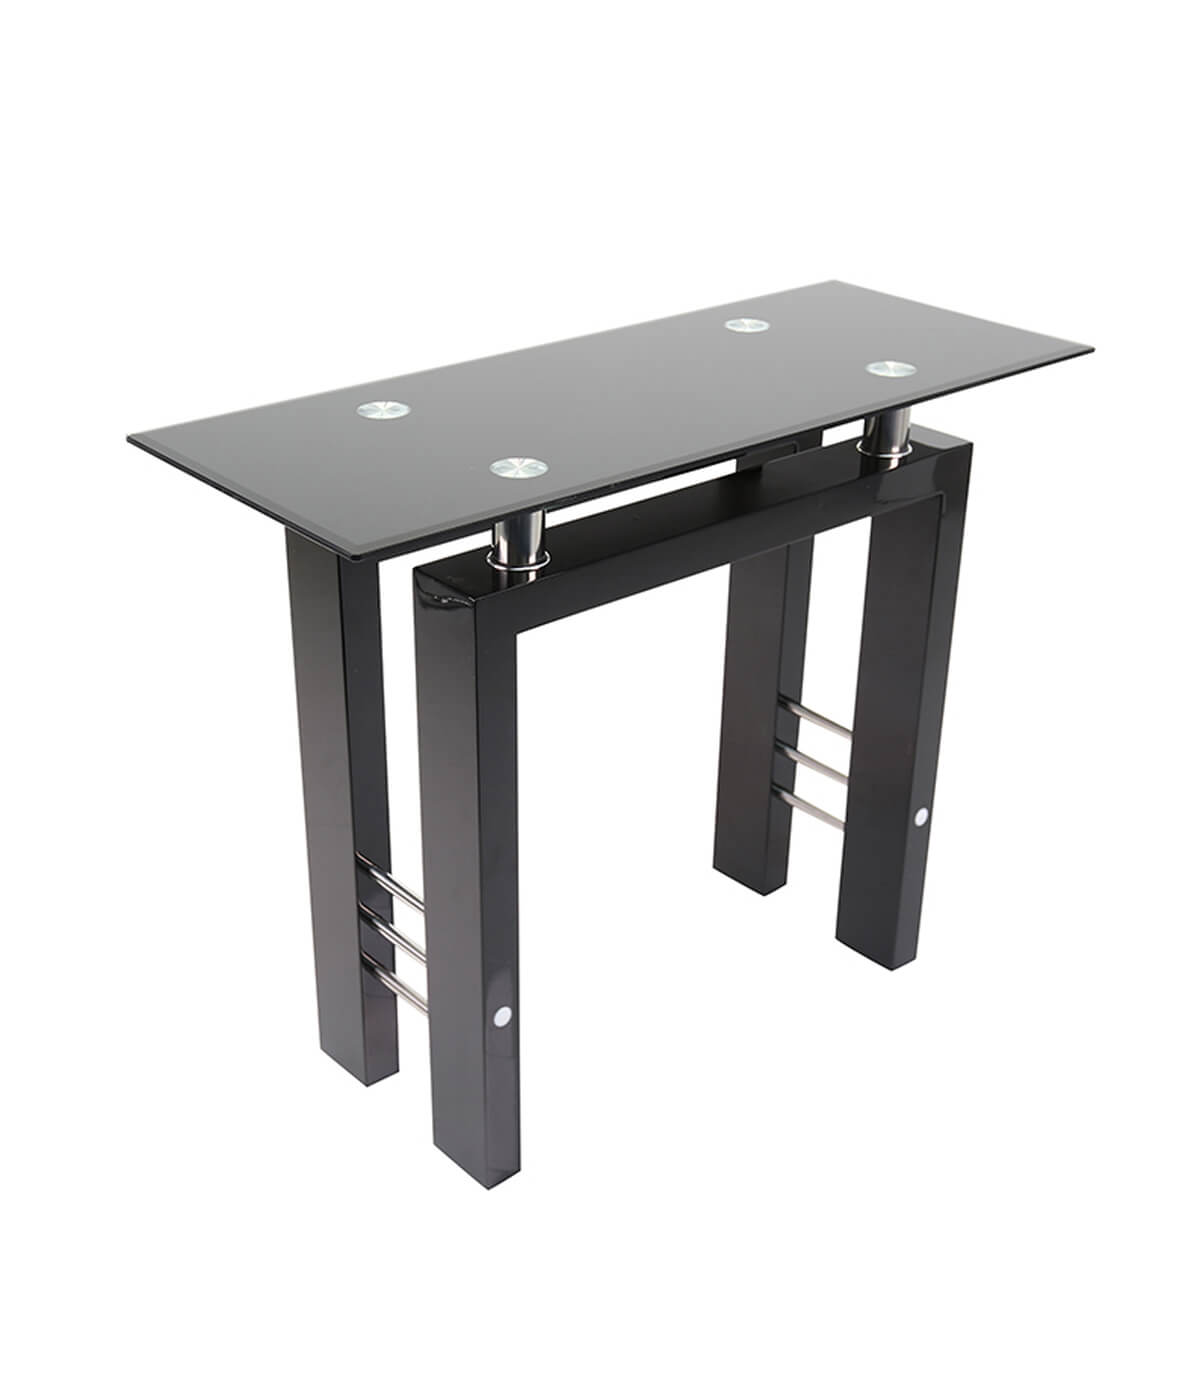 Coffee Table Layers White High Gloss Amazon Co Uk Kitchen: Metro Black High Gloss Console Table